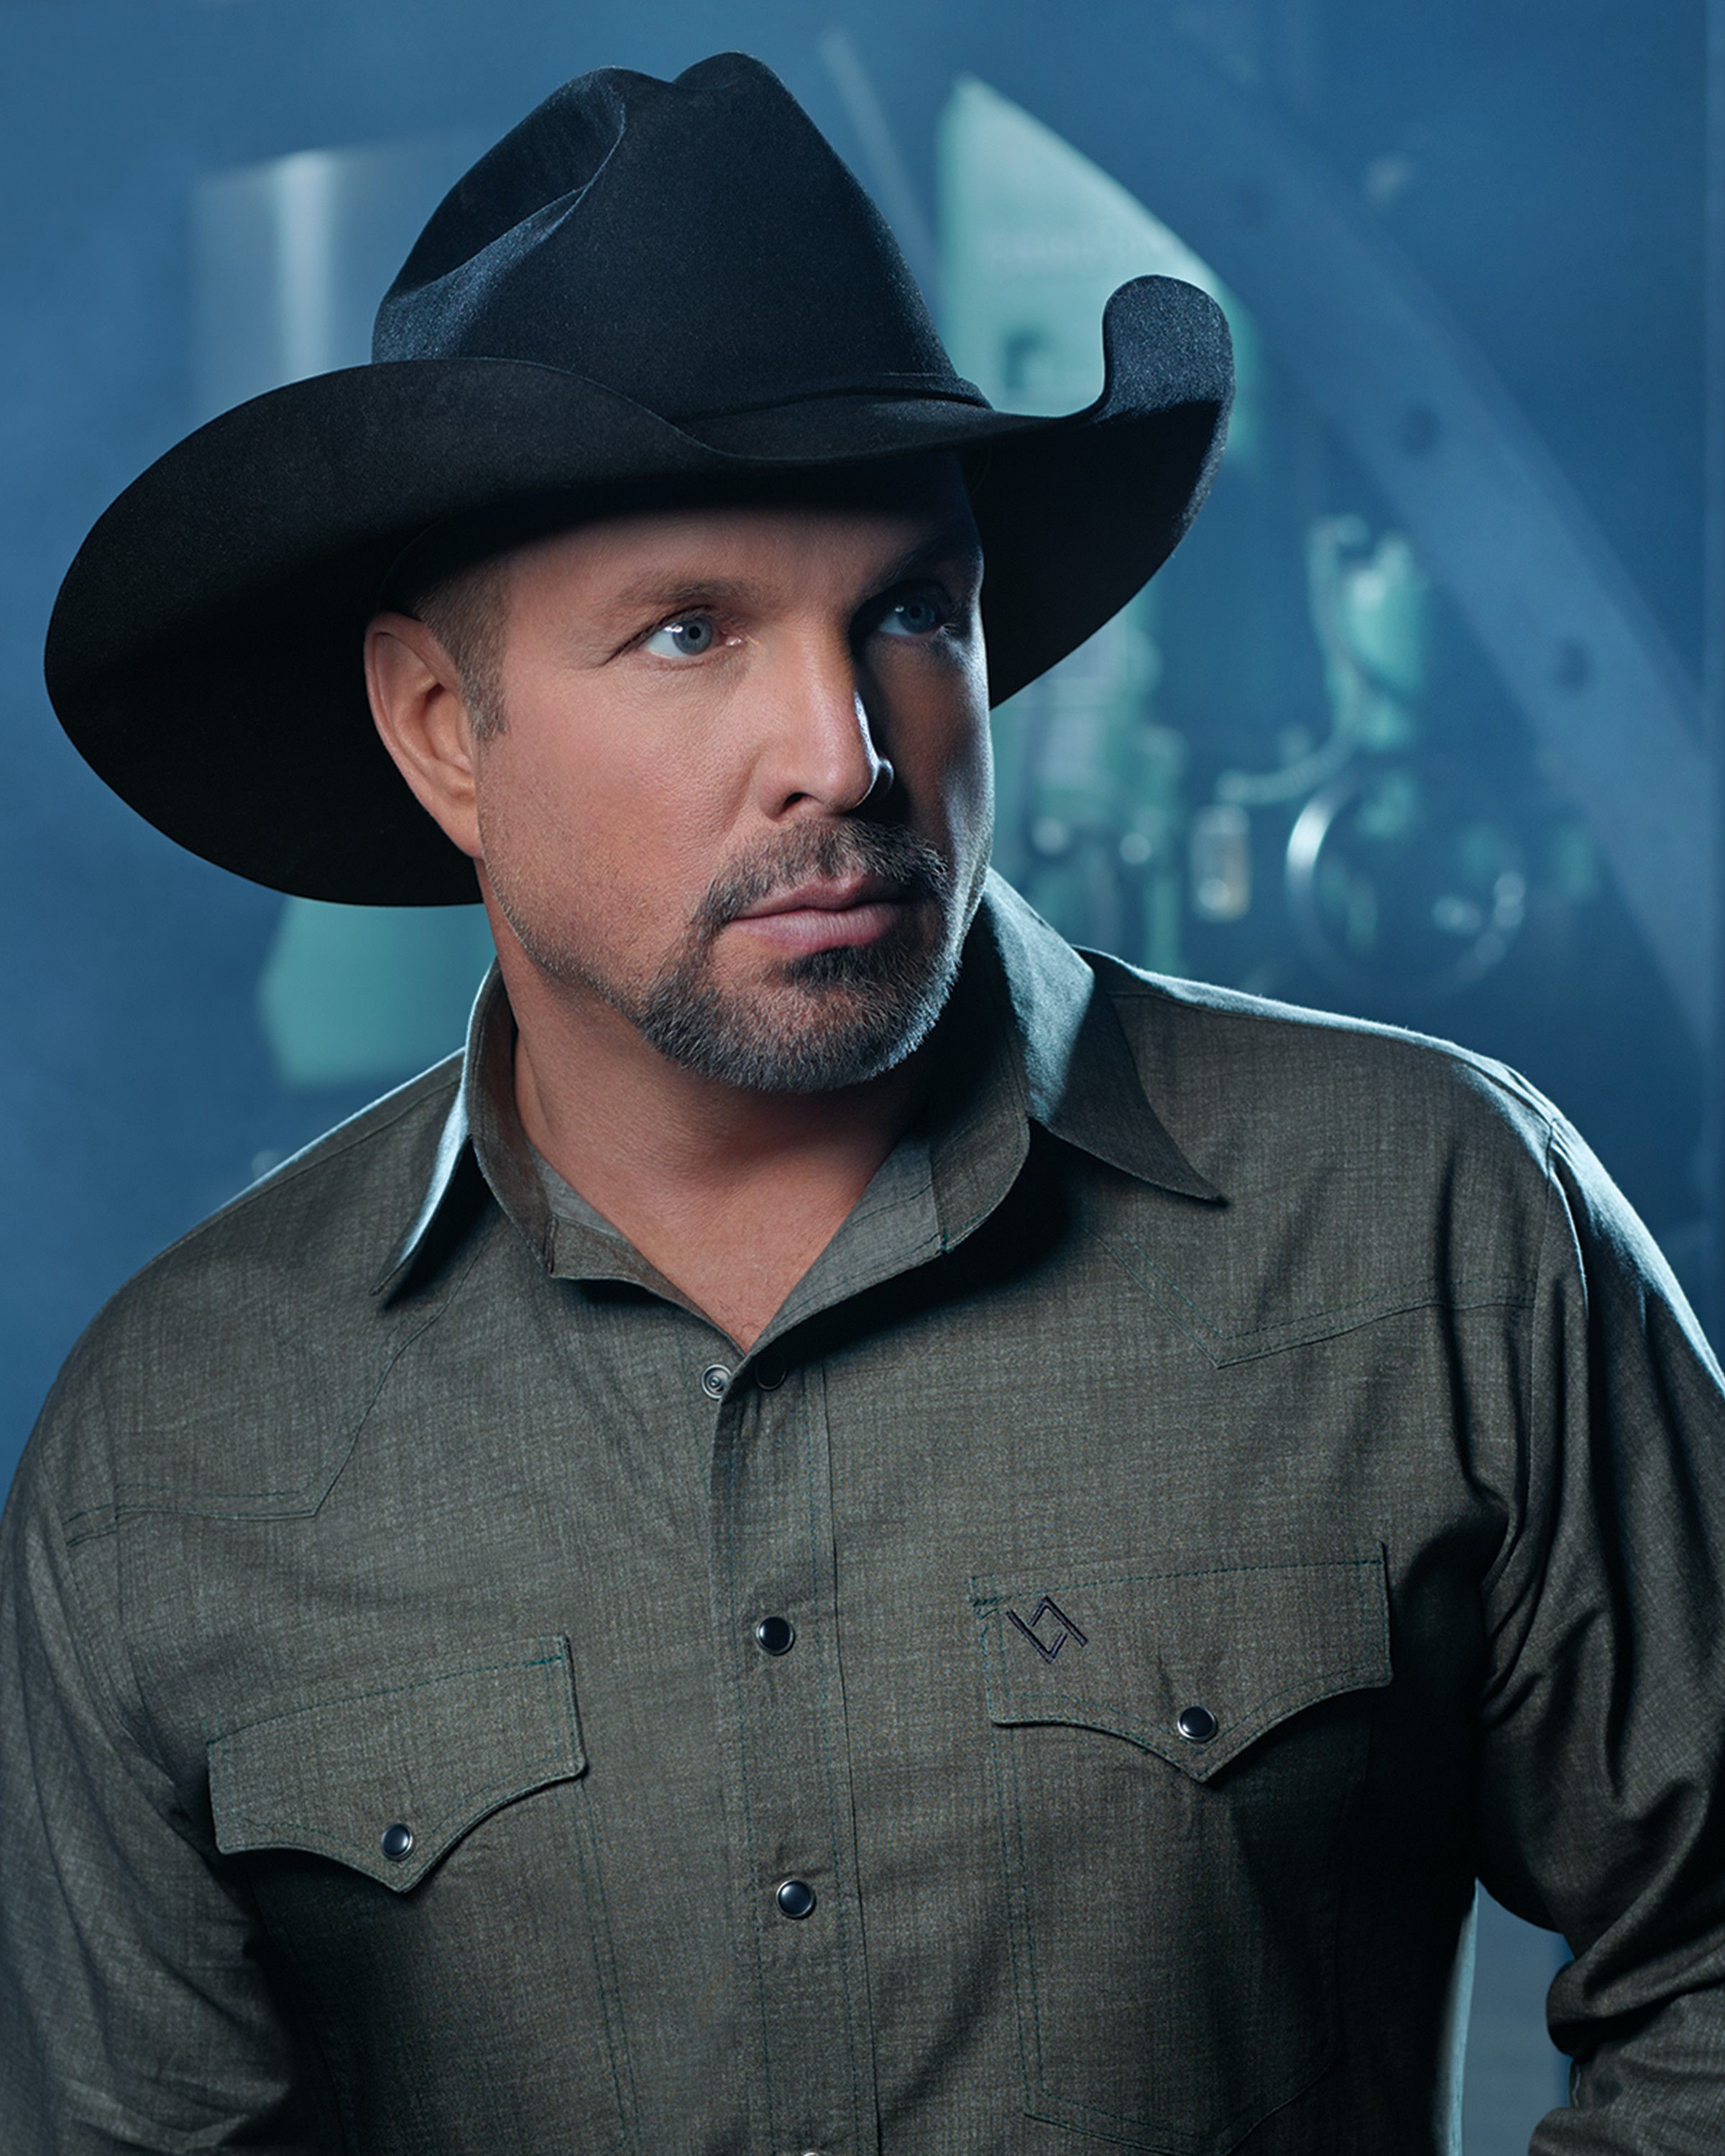 Garth Brooks Adds 2 More Shows to His July Concert Dates  2ad9892eecc